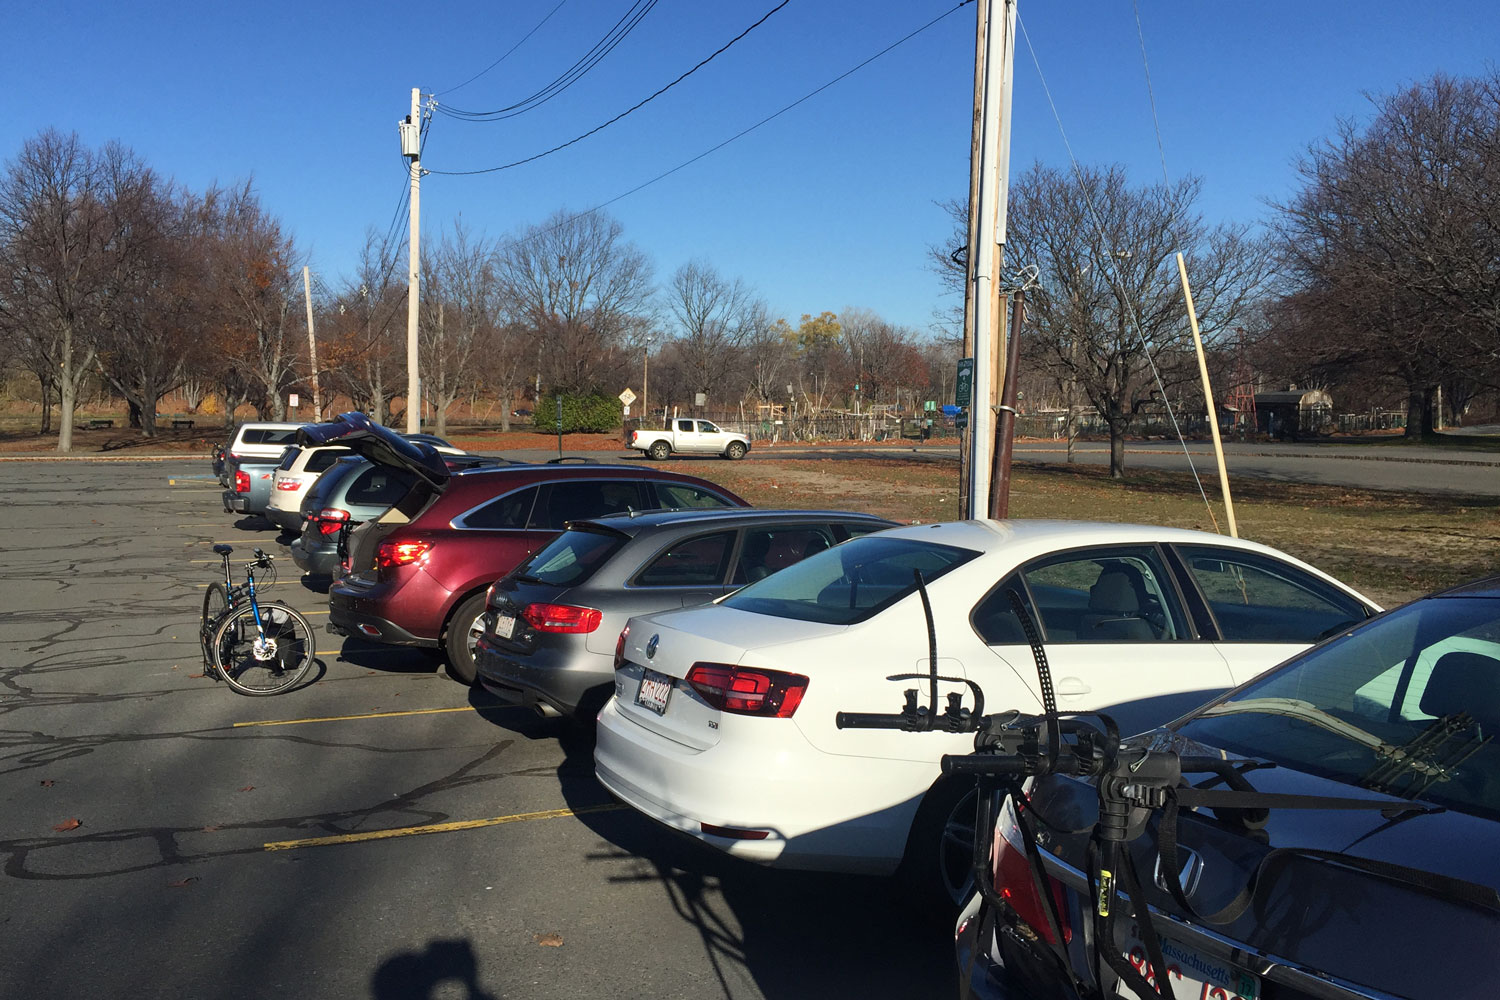 Today's Forecast: Cold and Dark – Yet Many Still Park&Pedal